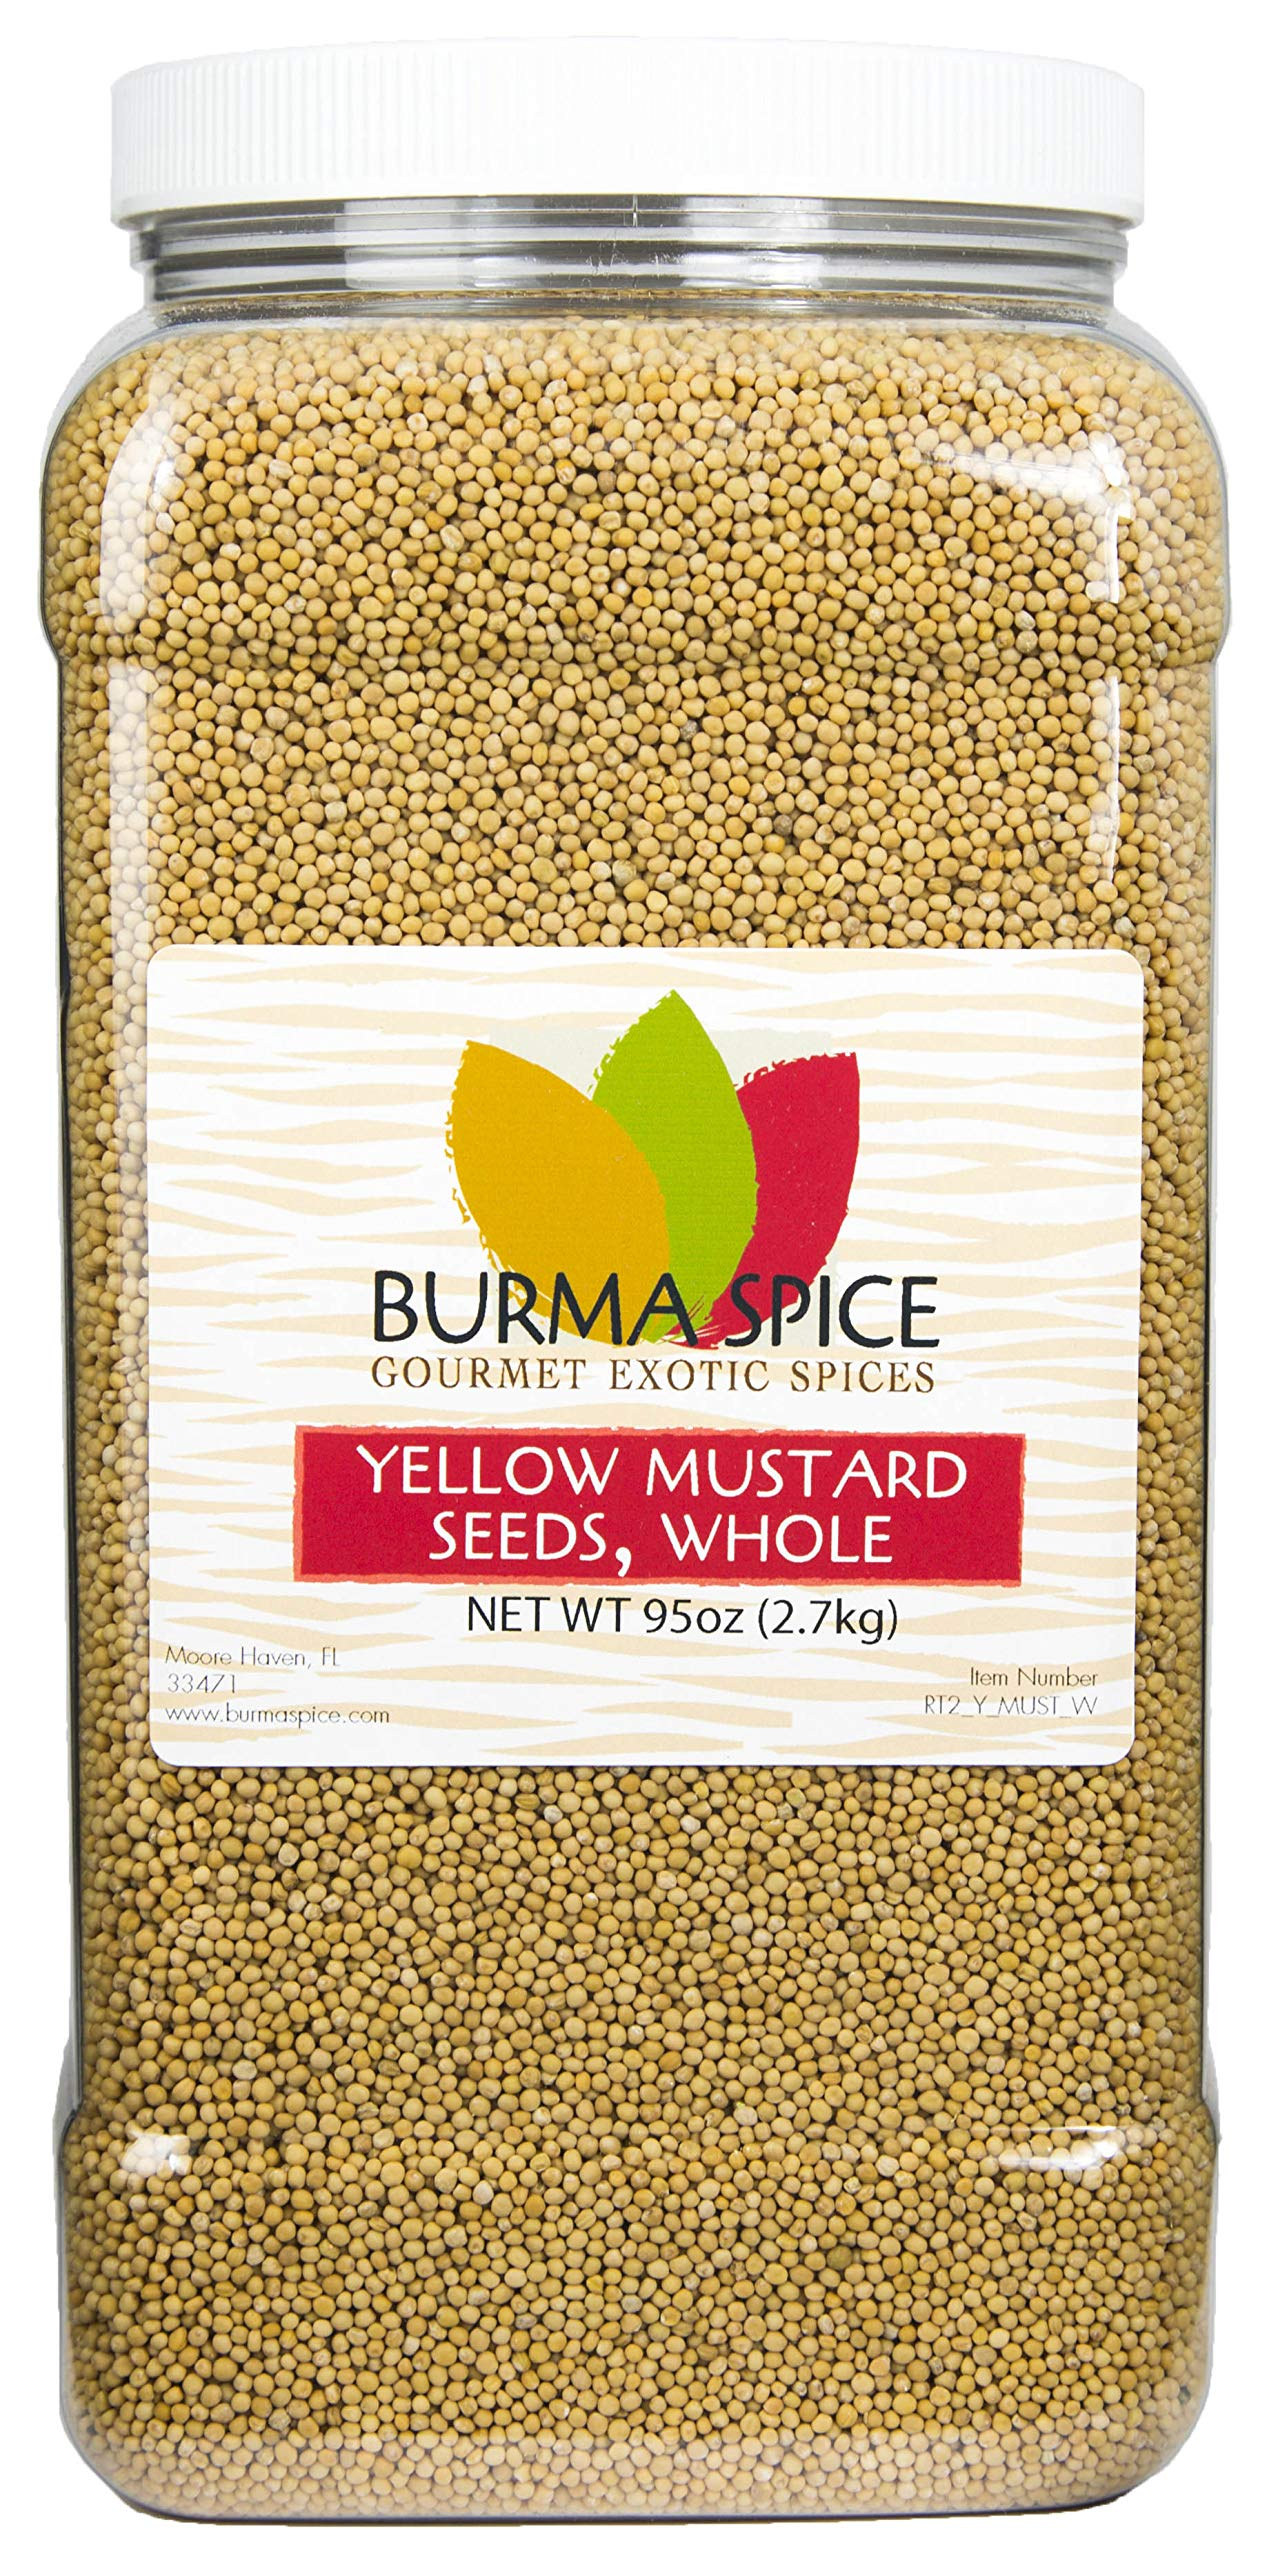 Yellow Mustard Seed : Whole, Dried, Spice, Herb, Seasoning, Indian Cuisine, Kosher (96oz.)